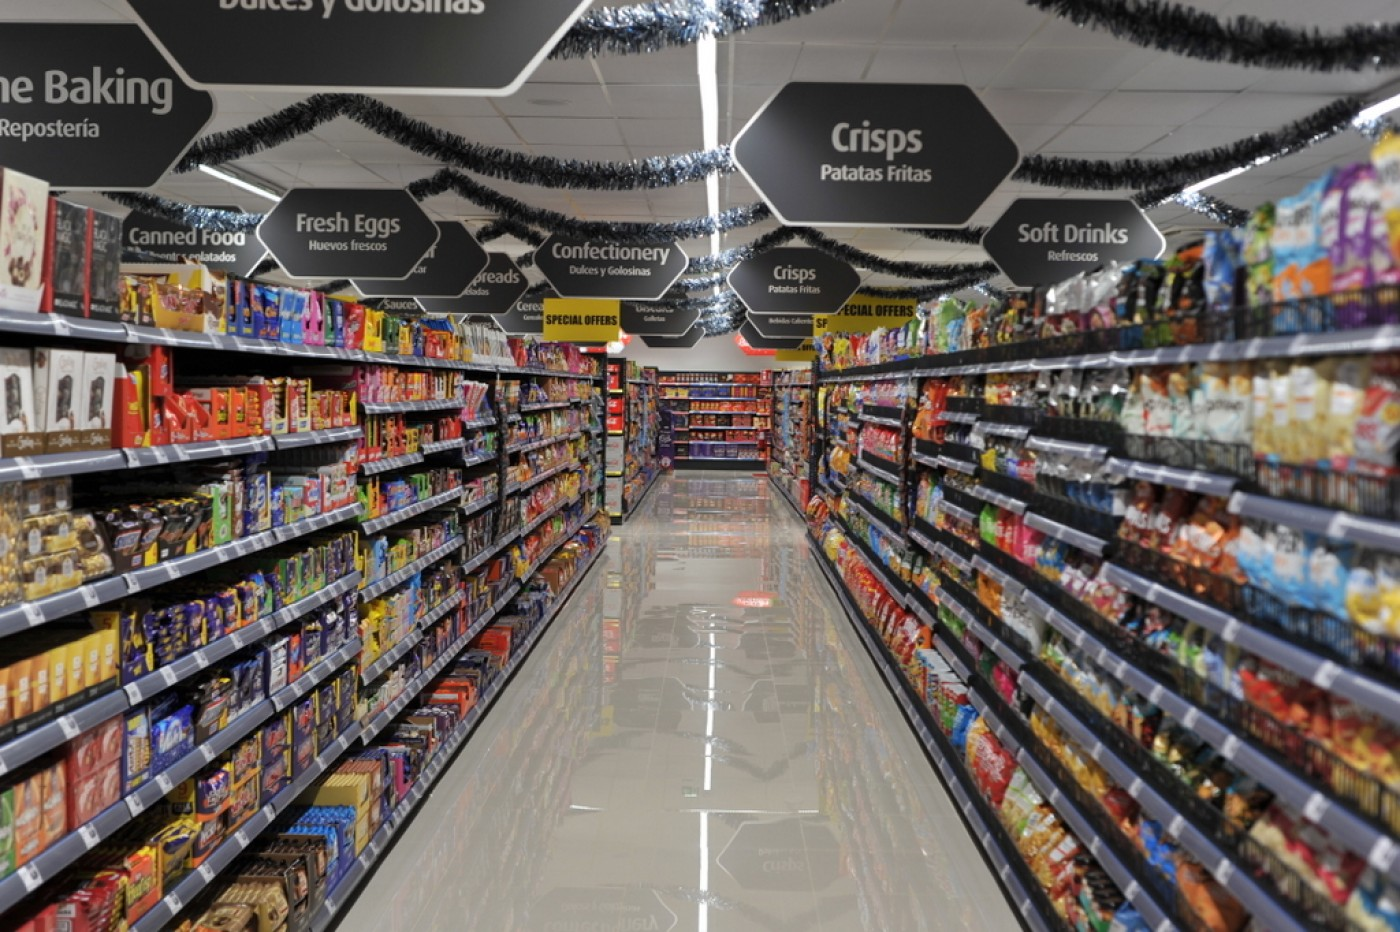 The Food Co Supermarket